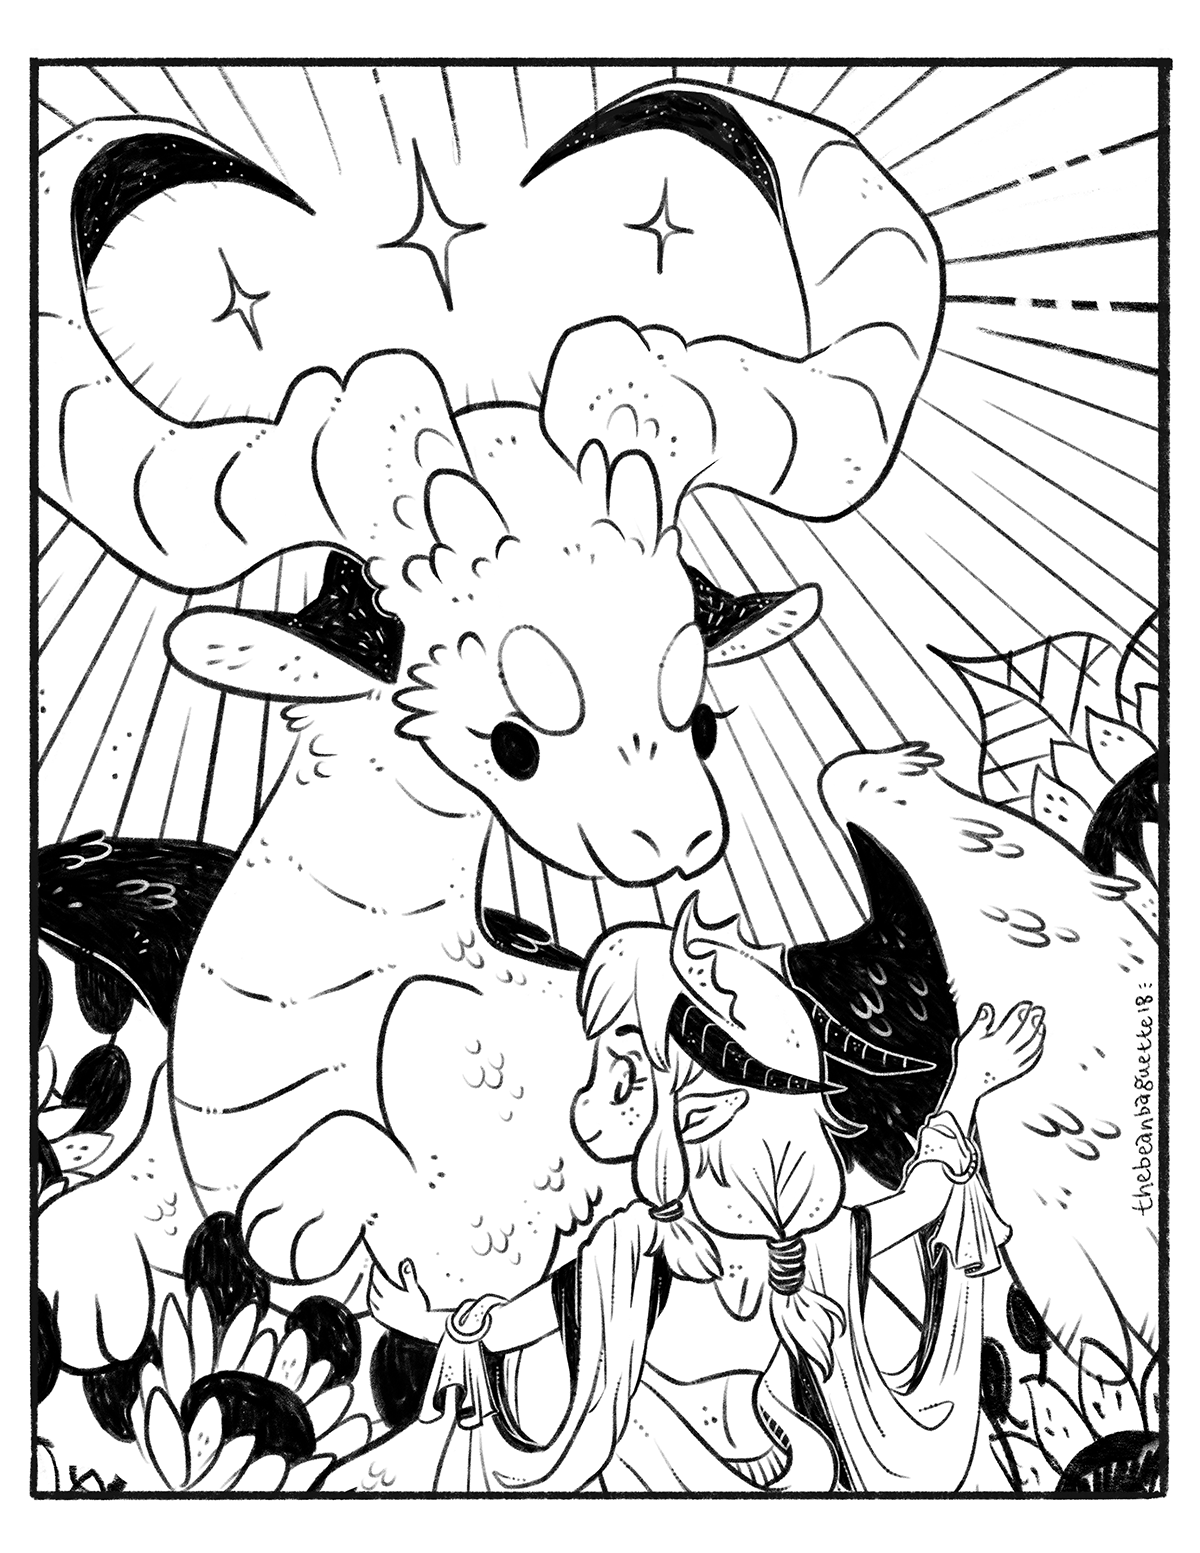 aug2018 coloring page--letter.png